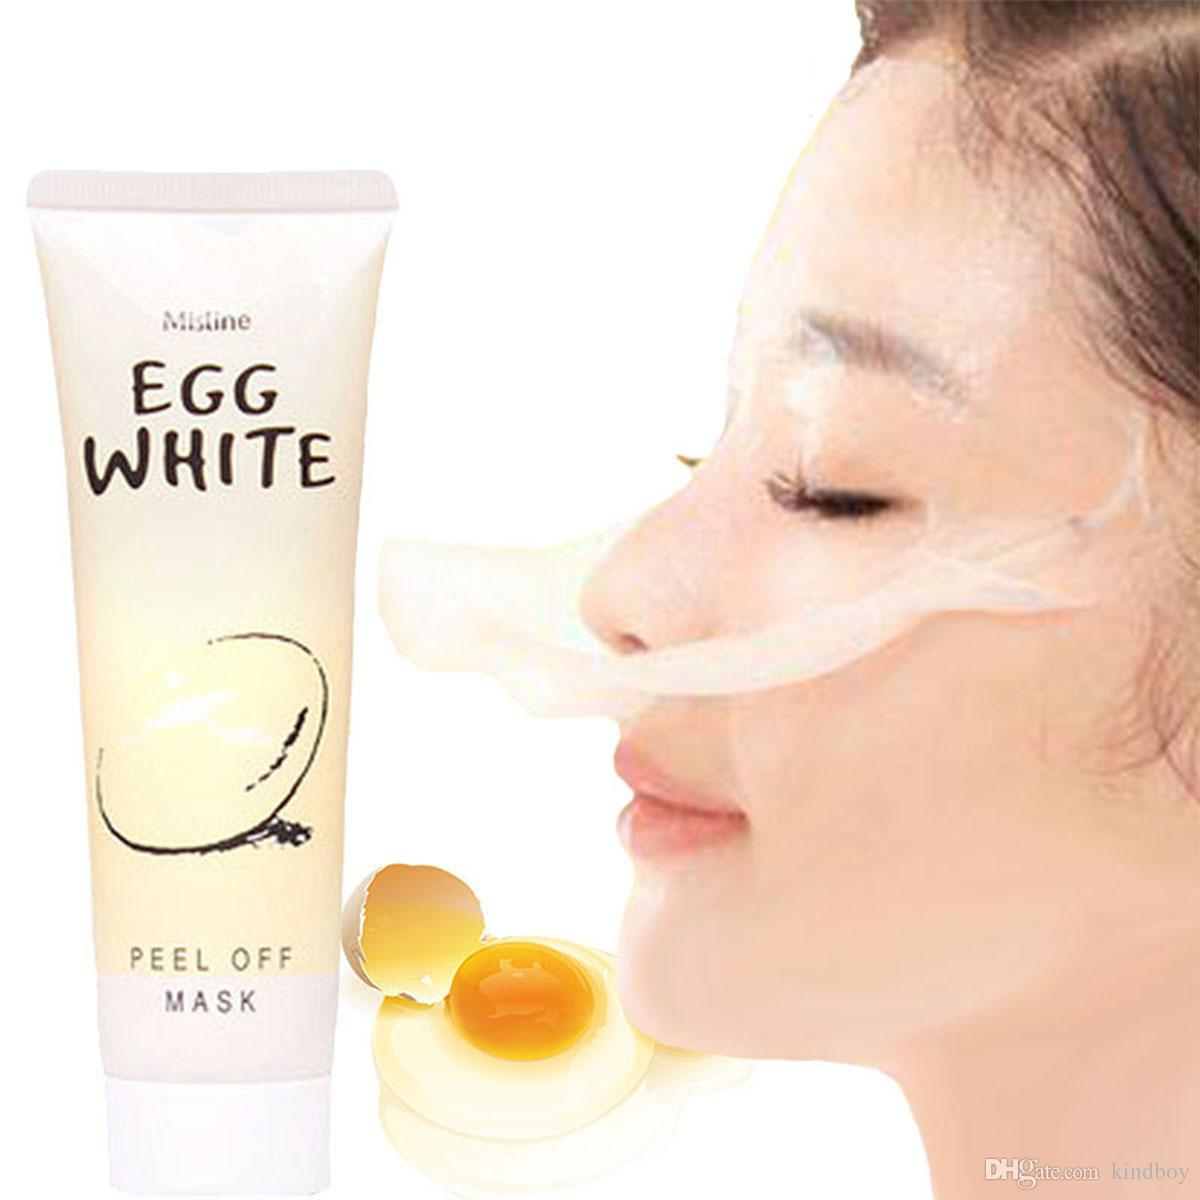 Egg White Peel Off Face Mask Collagen Blackhead Remover Thailand Moisturizing Beauty Products Facial Mask 85g free DHL